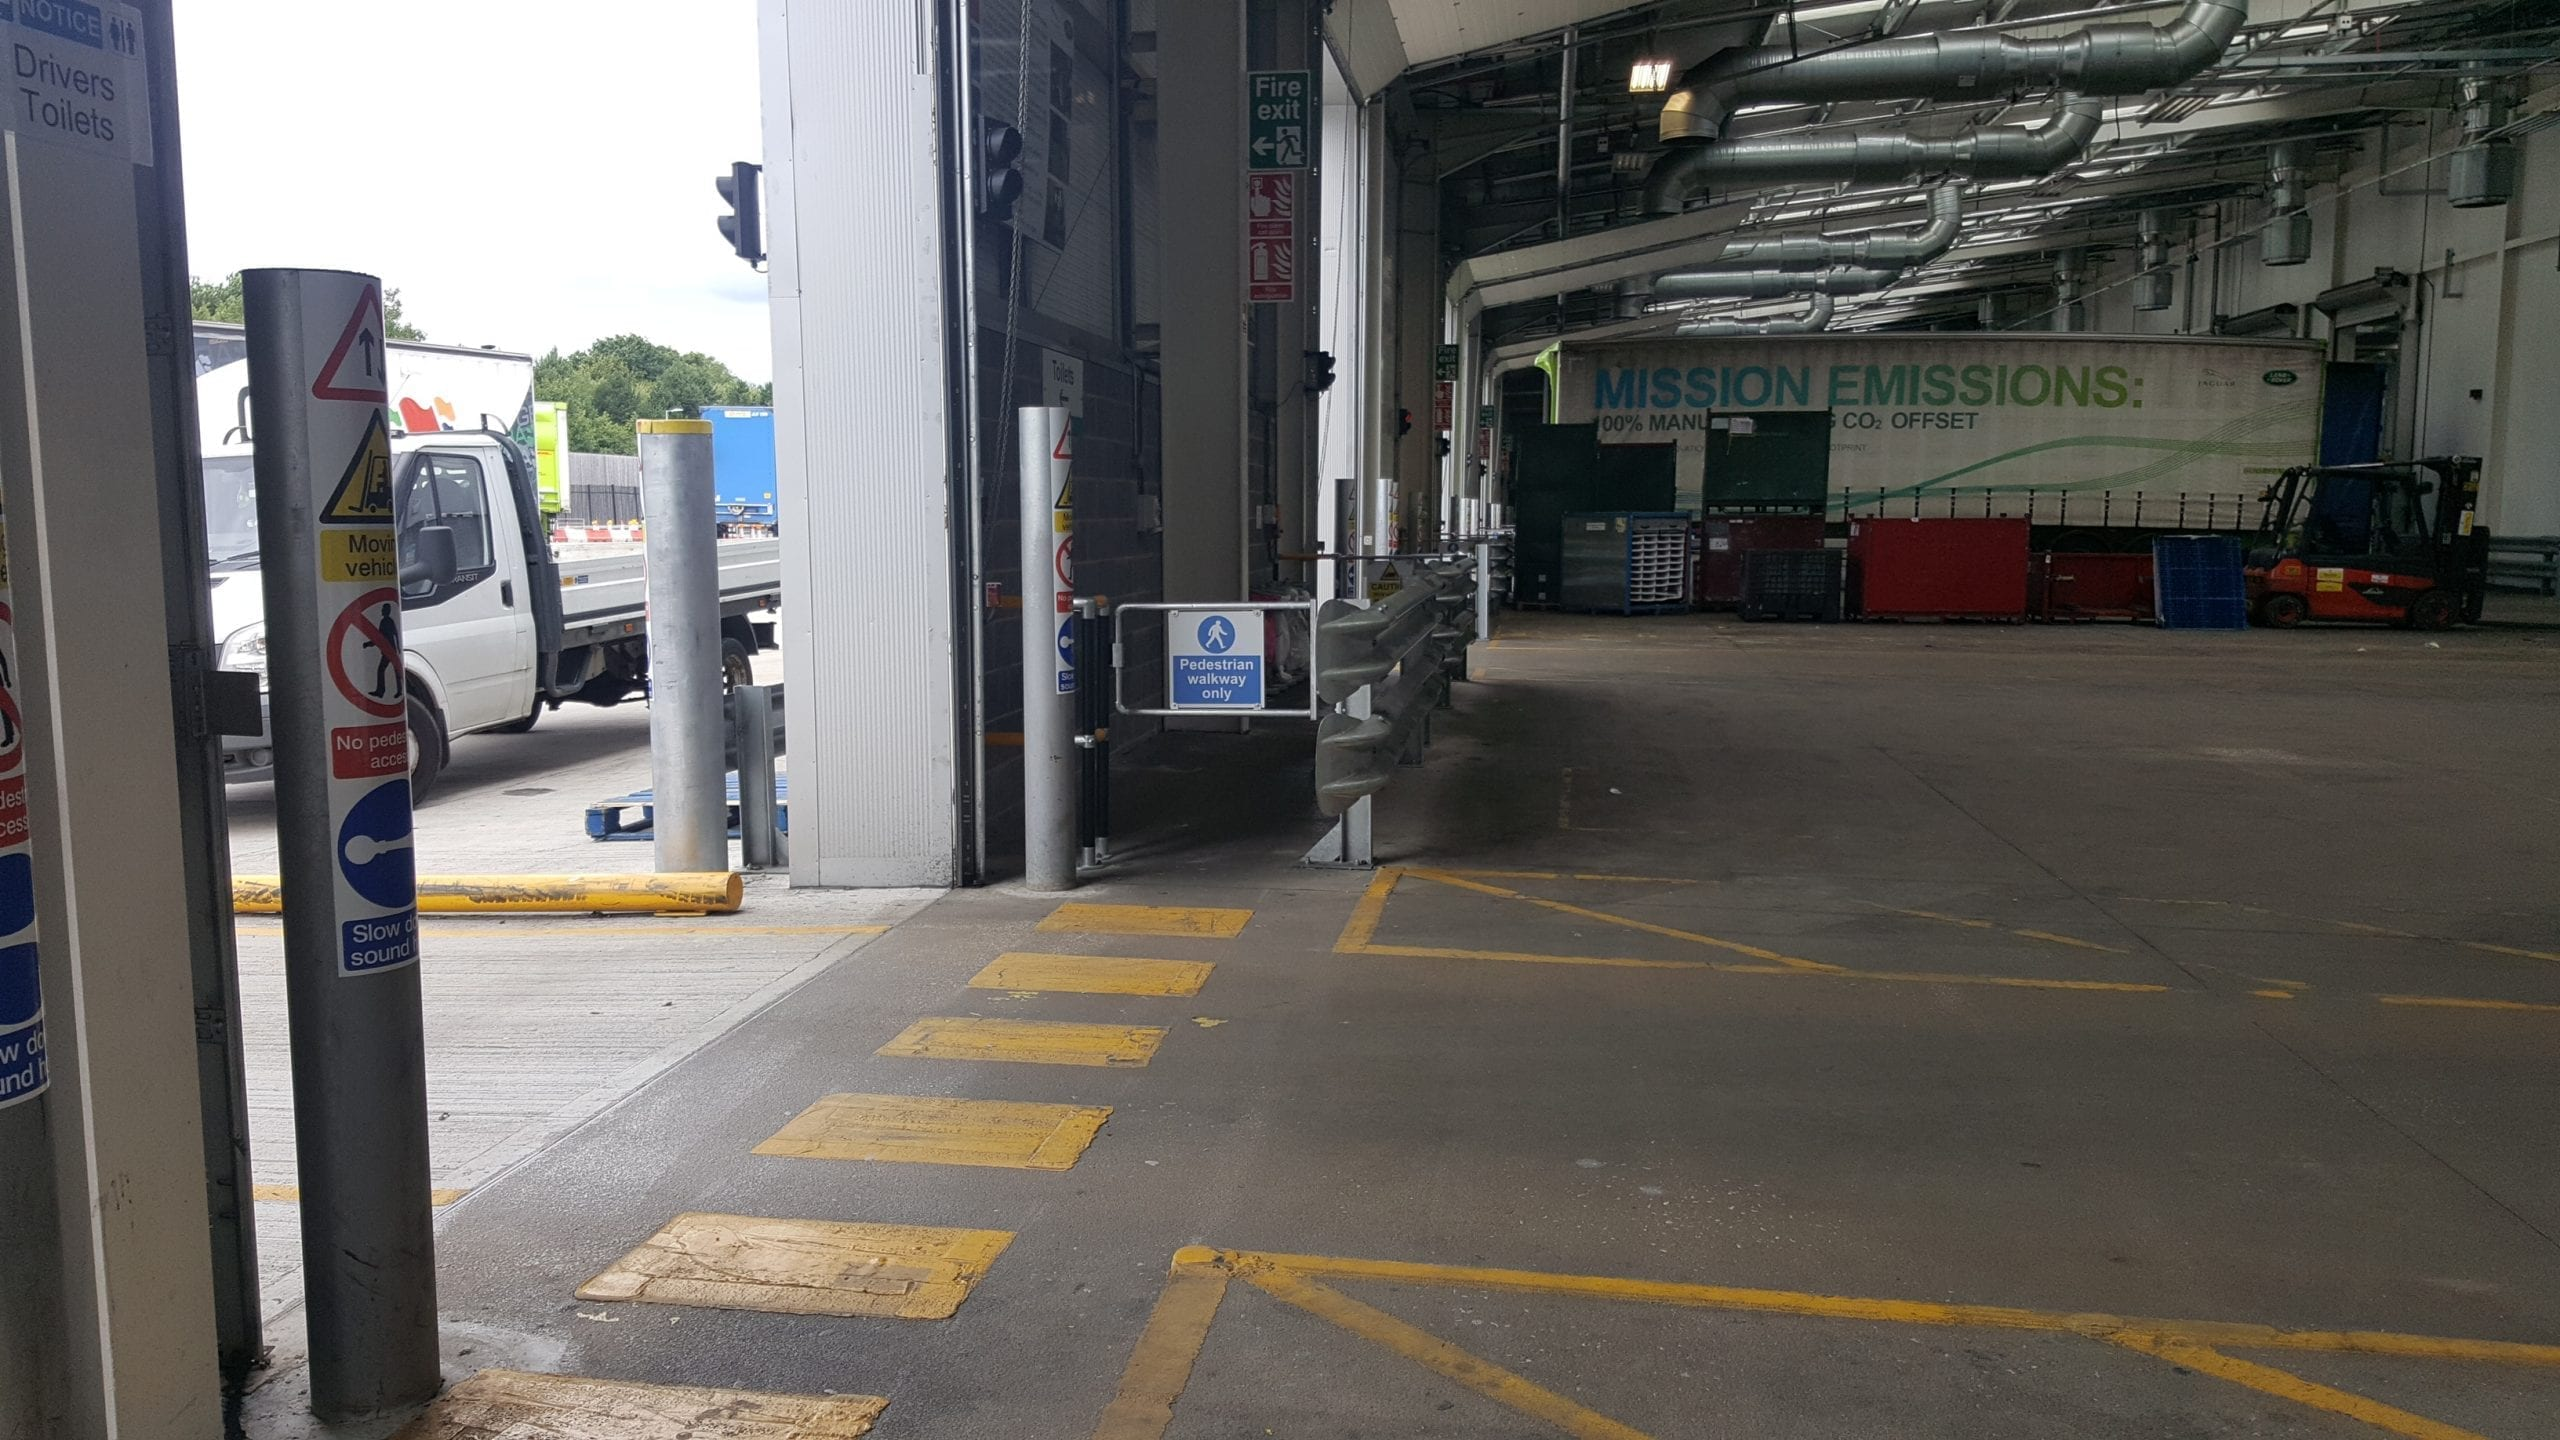 New Walkway for Pedestrians At JLR, HGV area